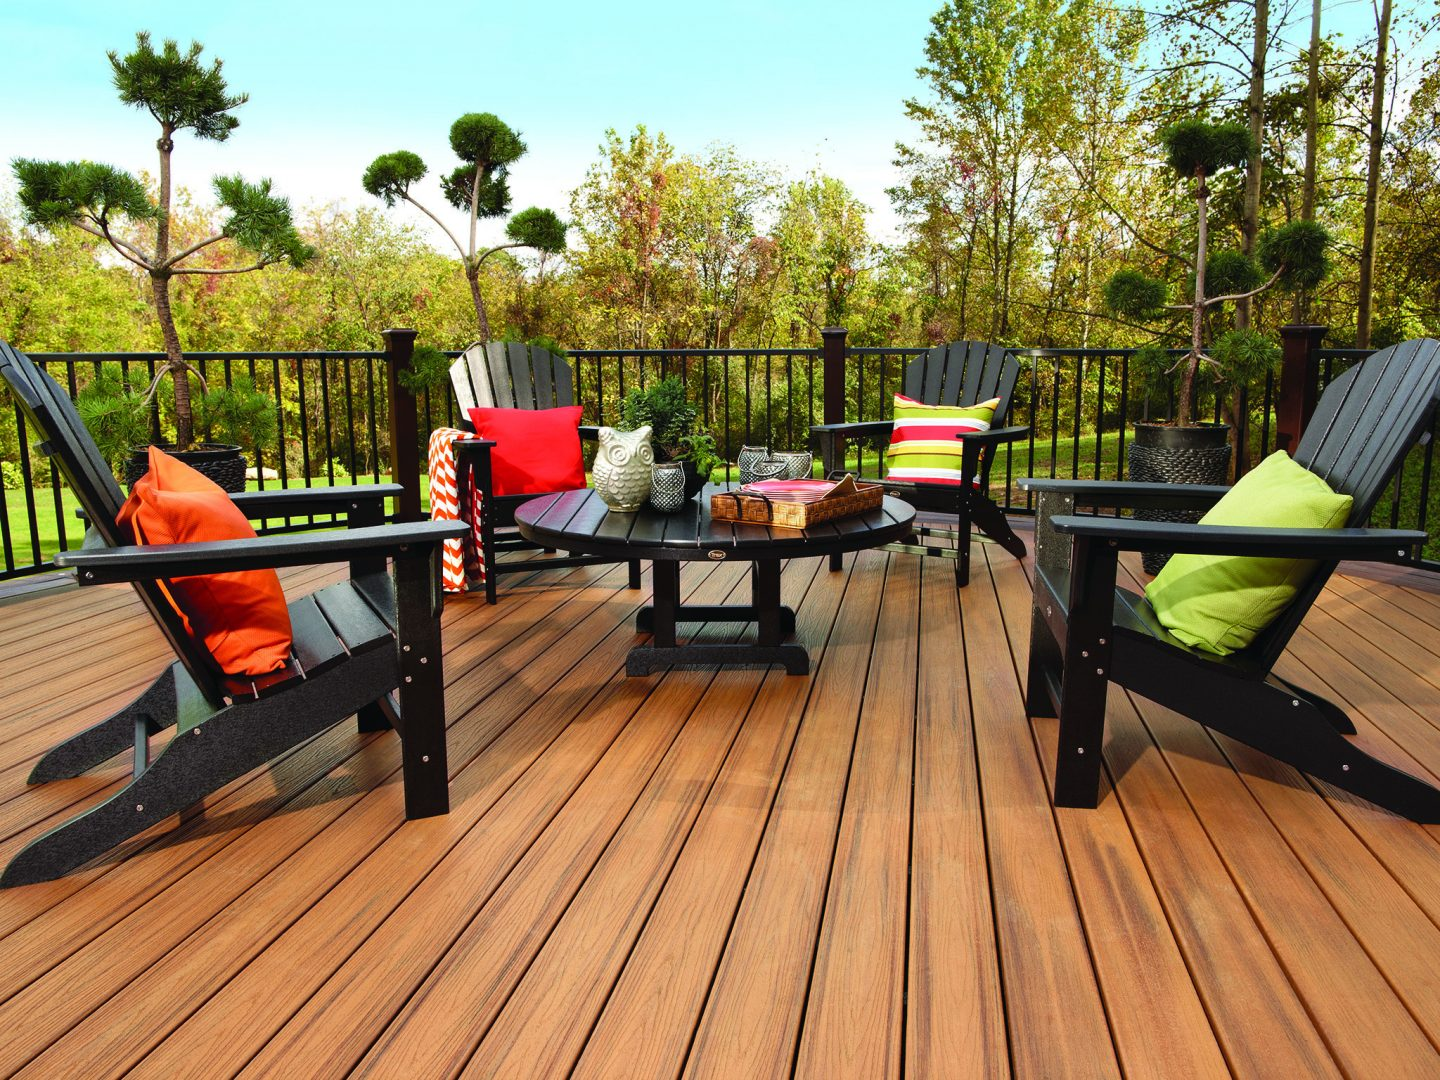 Protect your deck from short- and long-term threats